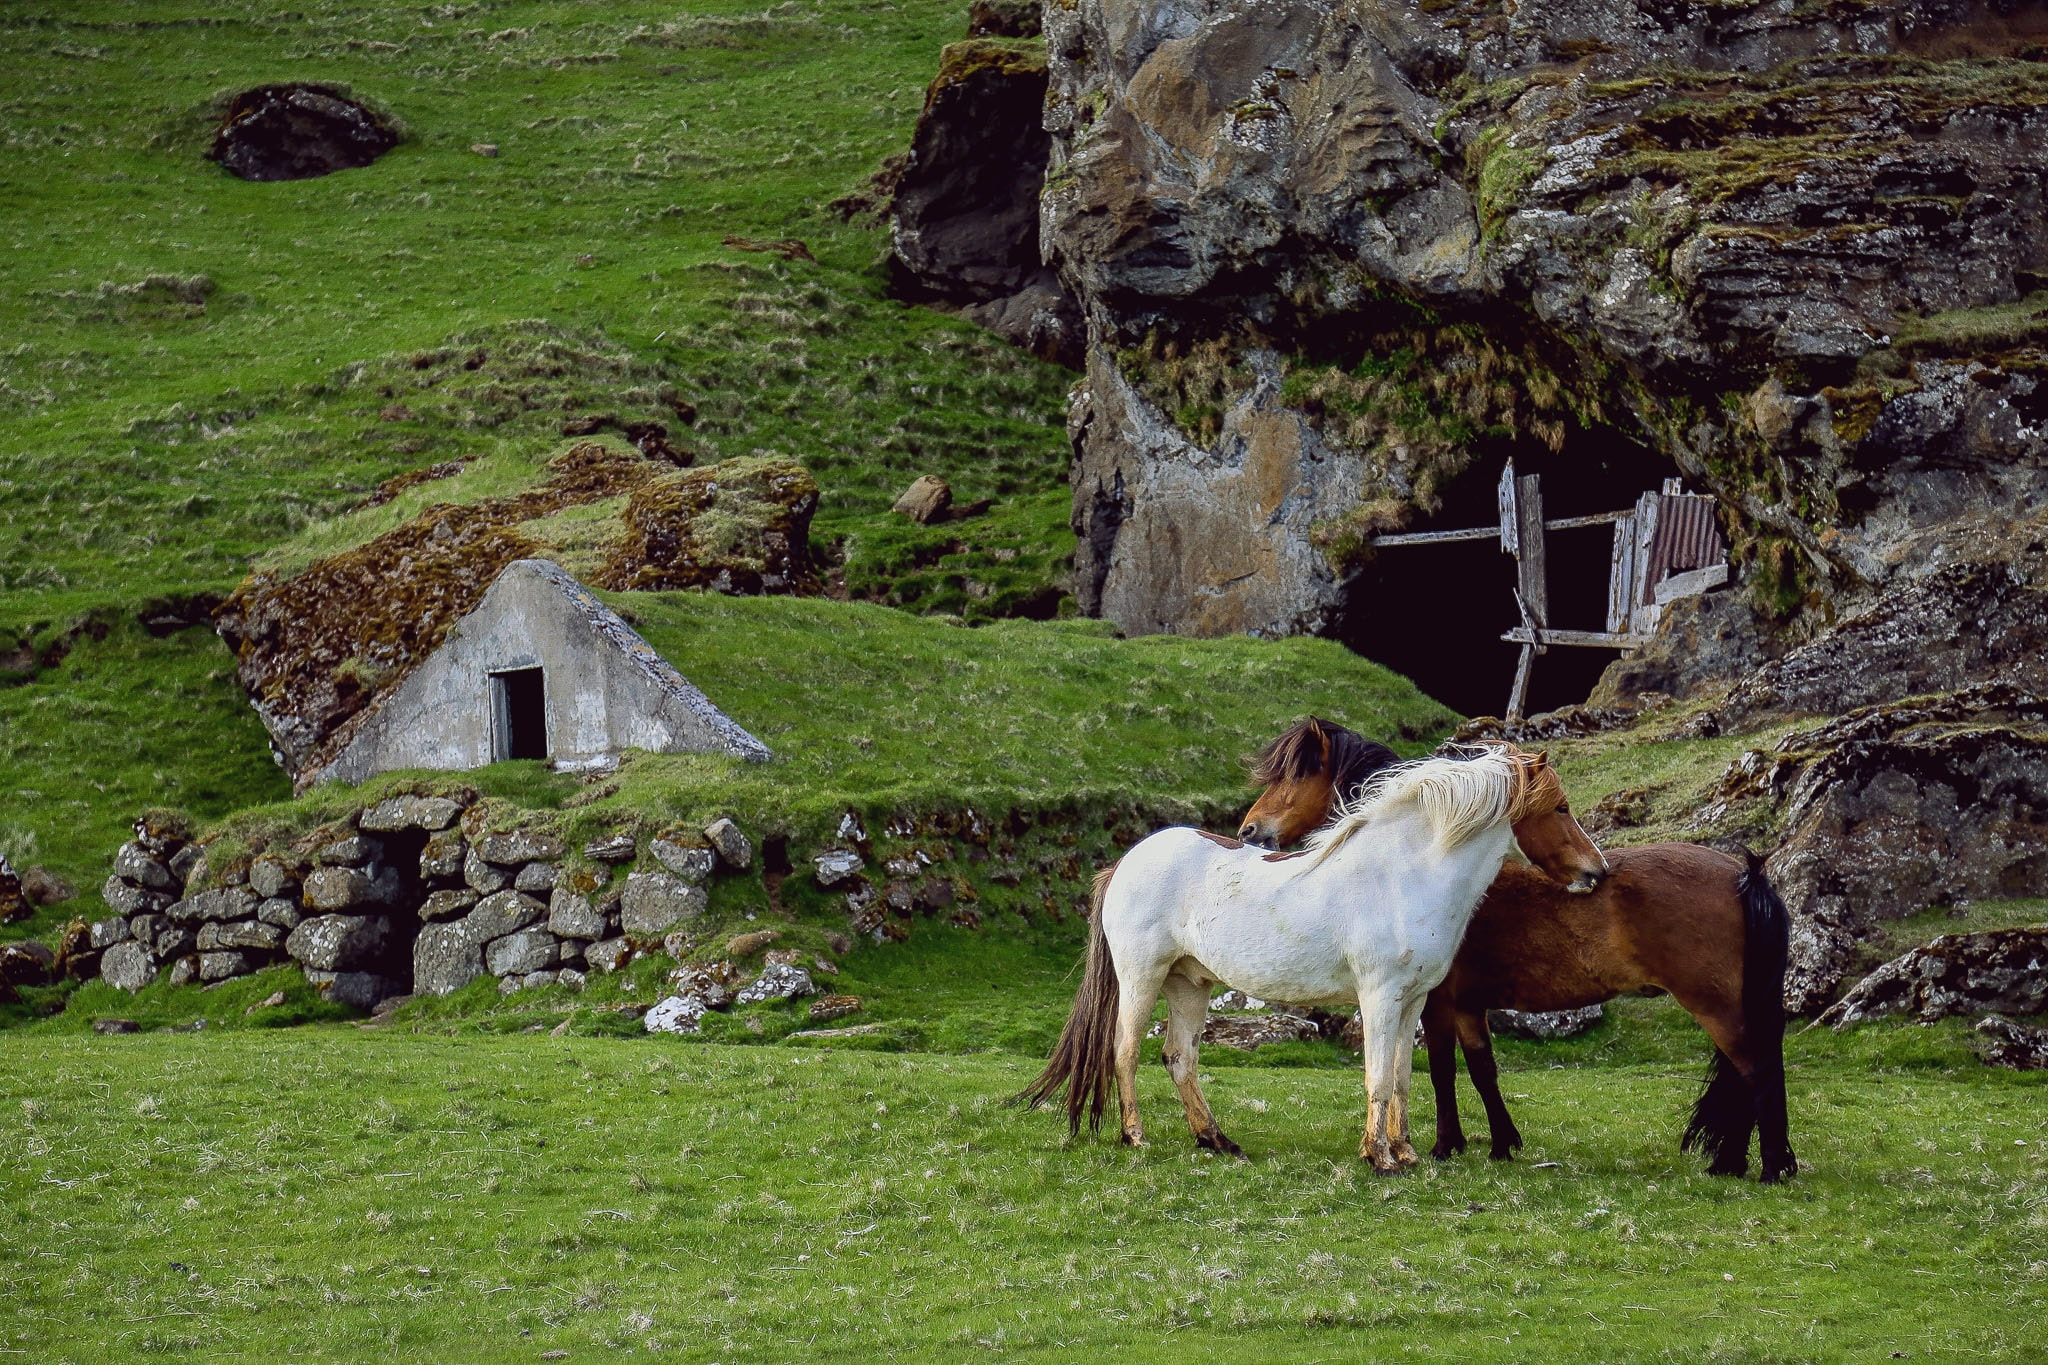 Two horses standing close to each other near a structure built of stone and an entrance to a cave